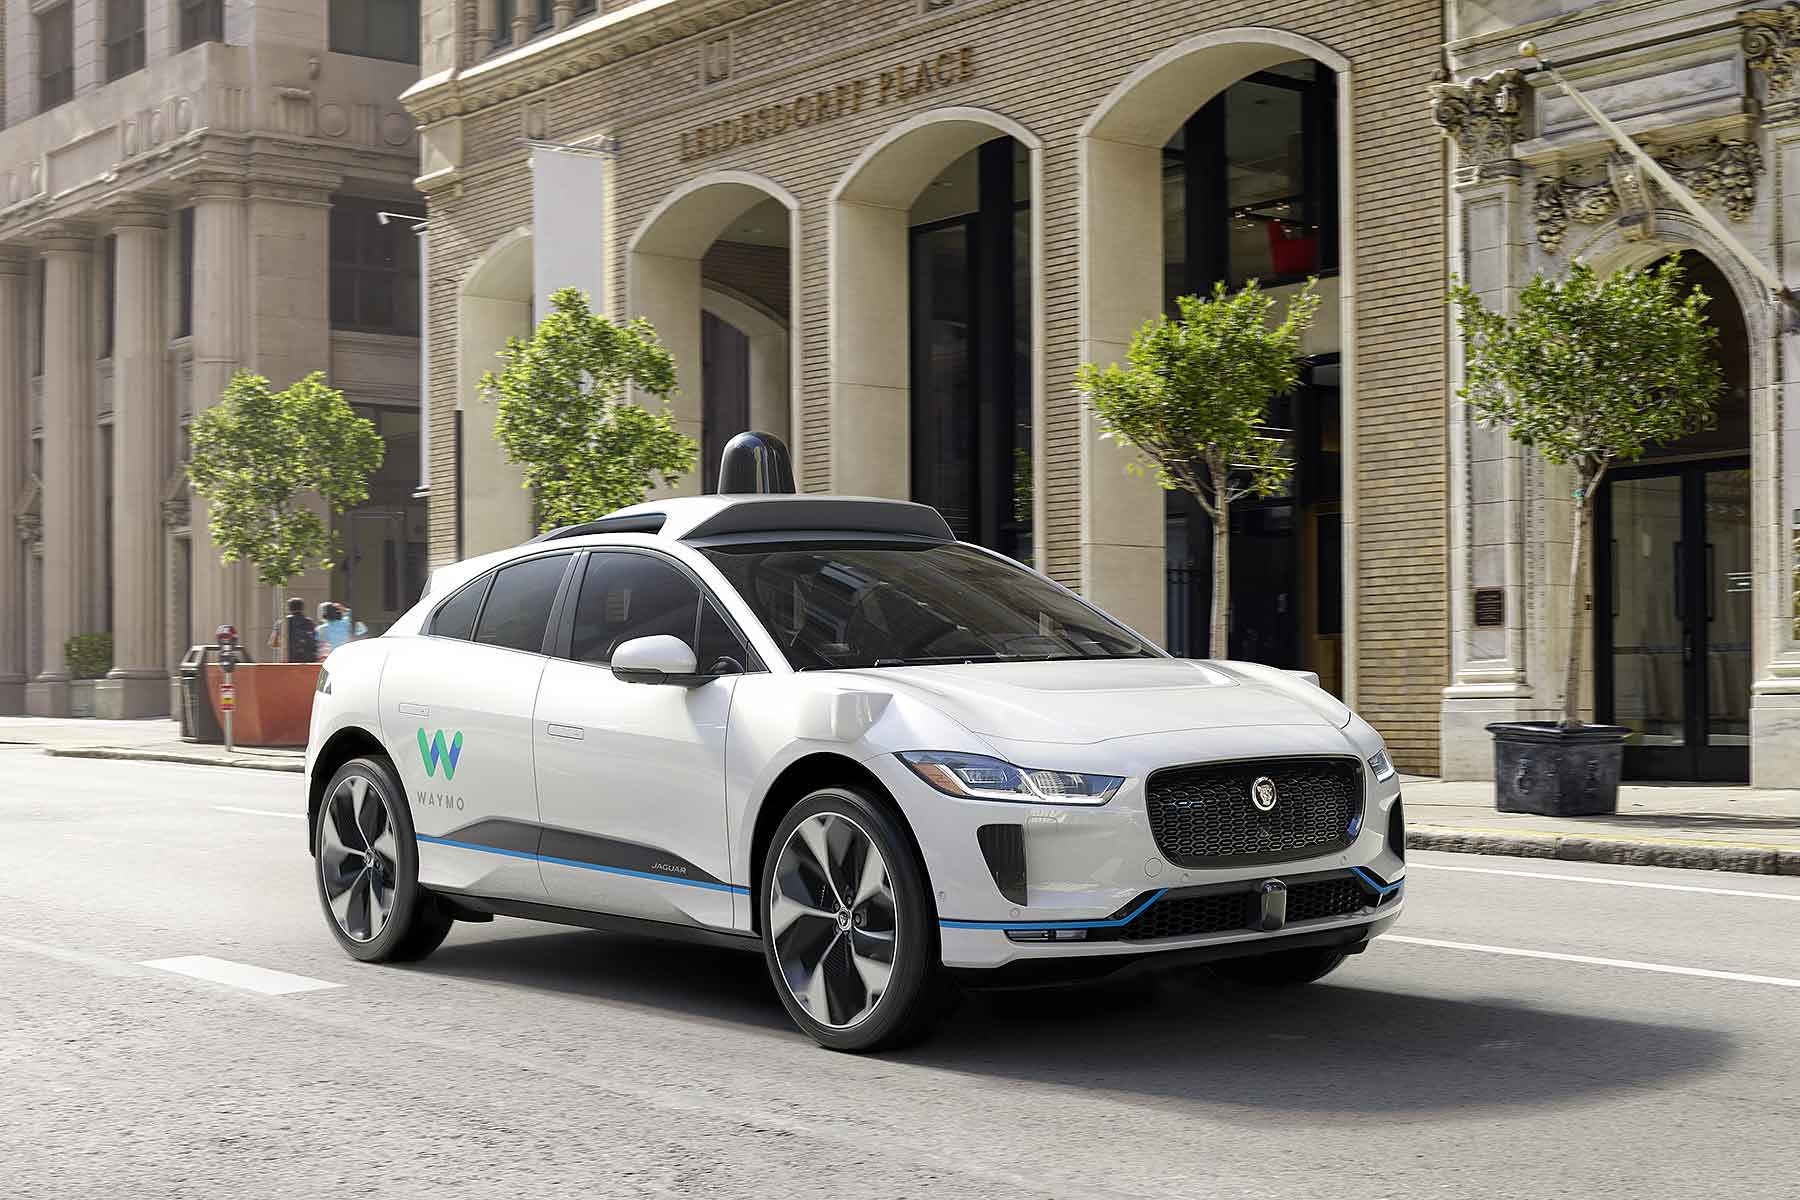 Waymo Jaguar I-Pace self-driving EV